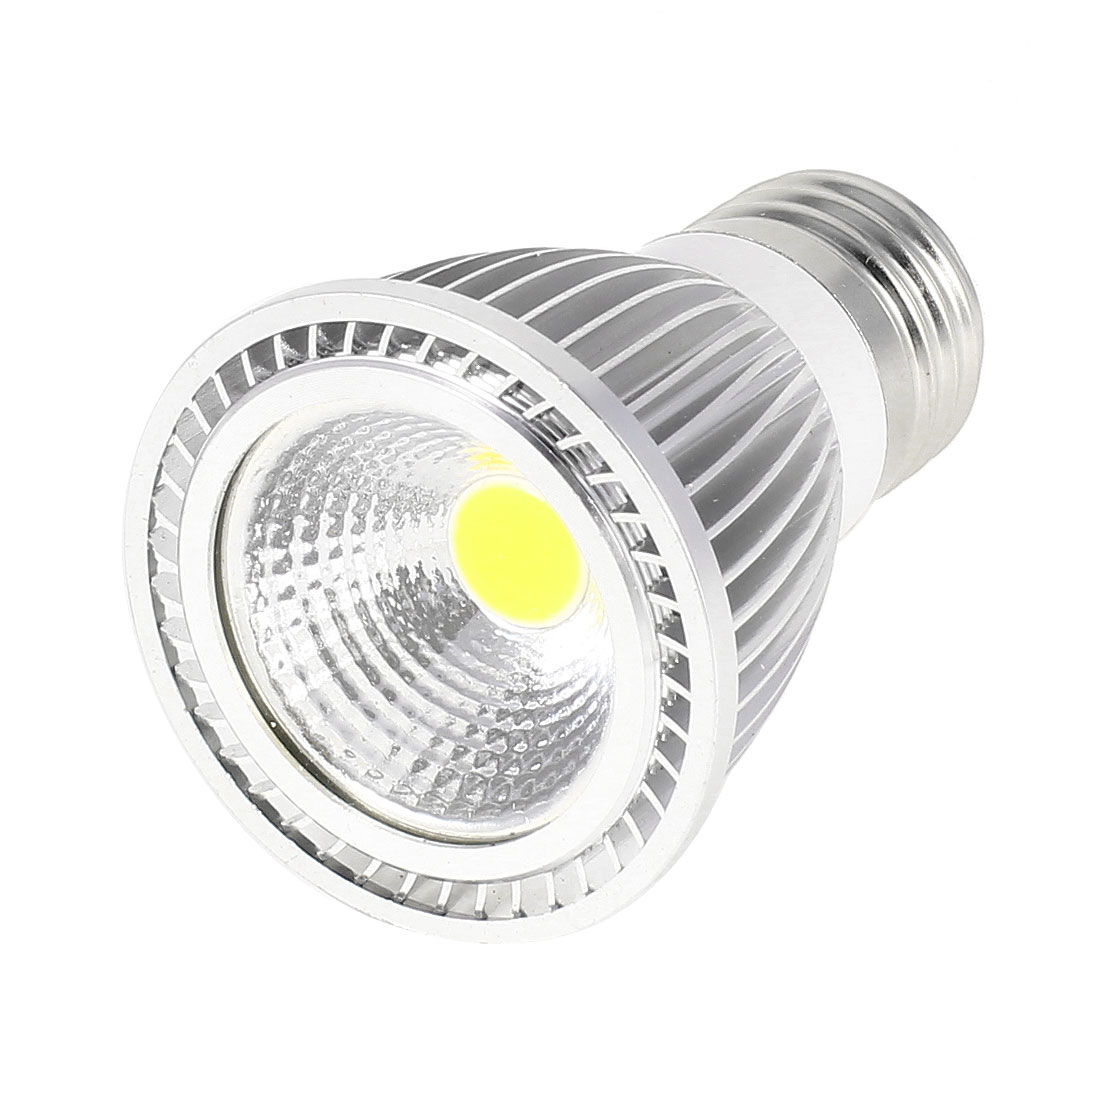 AC 85-265V E27 Socket 5W COB Warm White LED Light Ceiling Spotlight Lamp Bulb